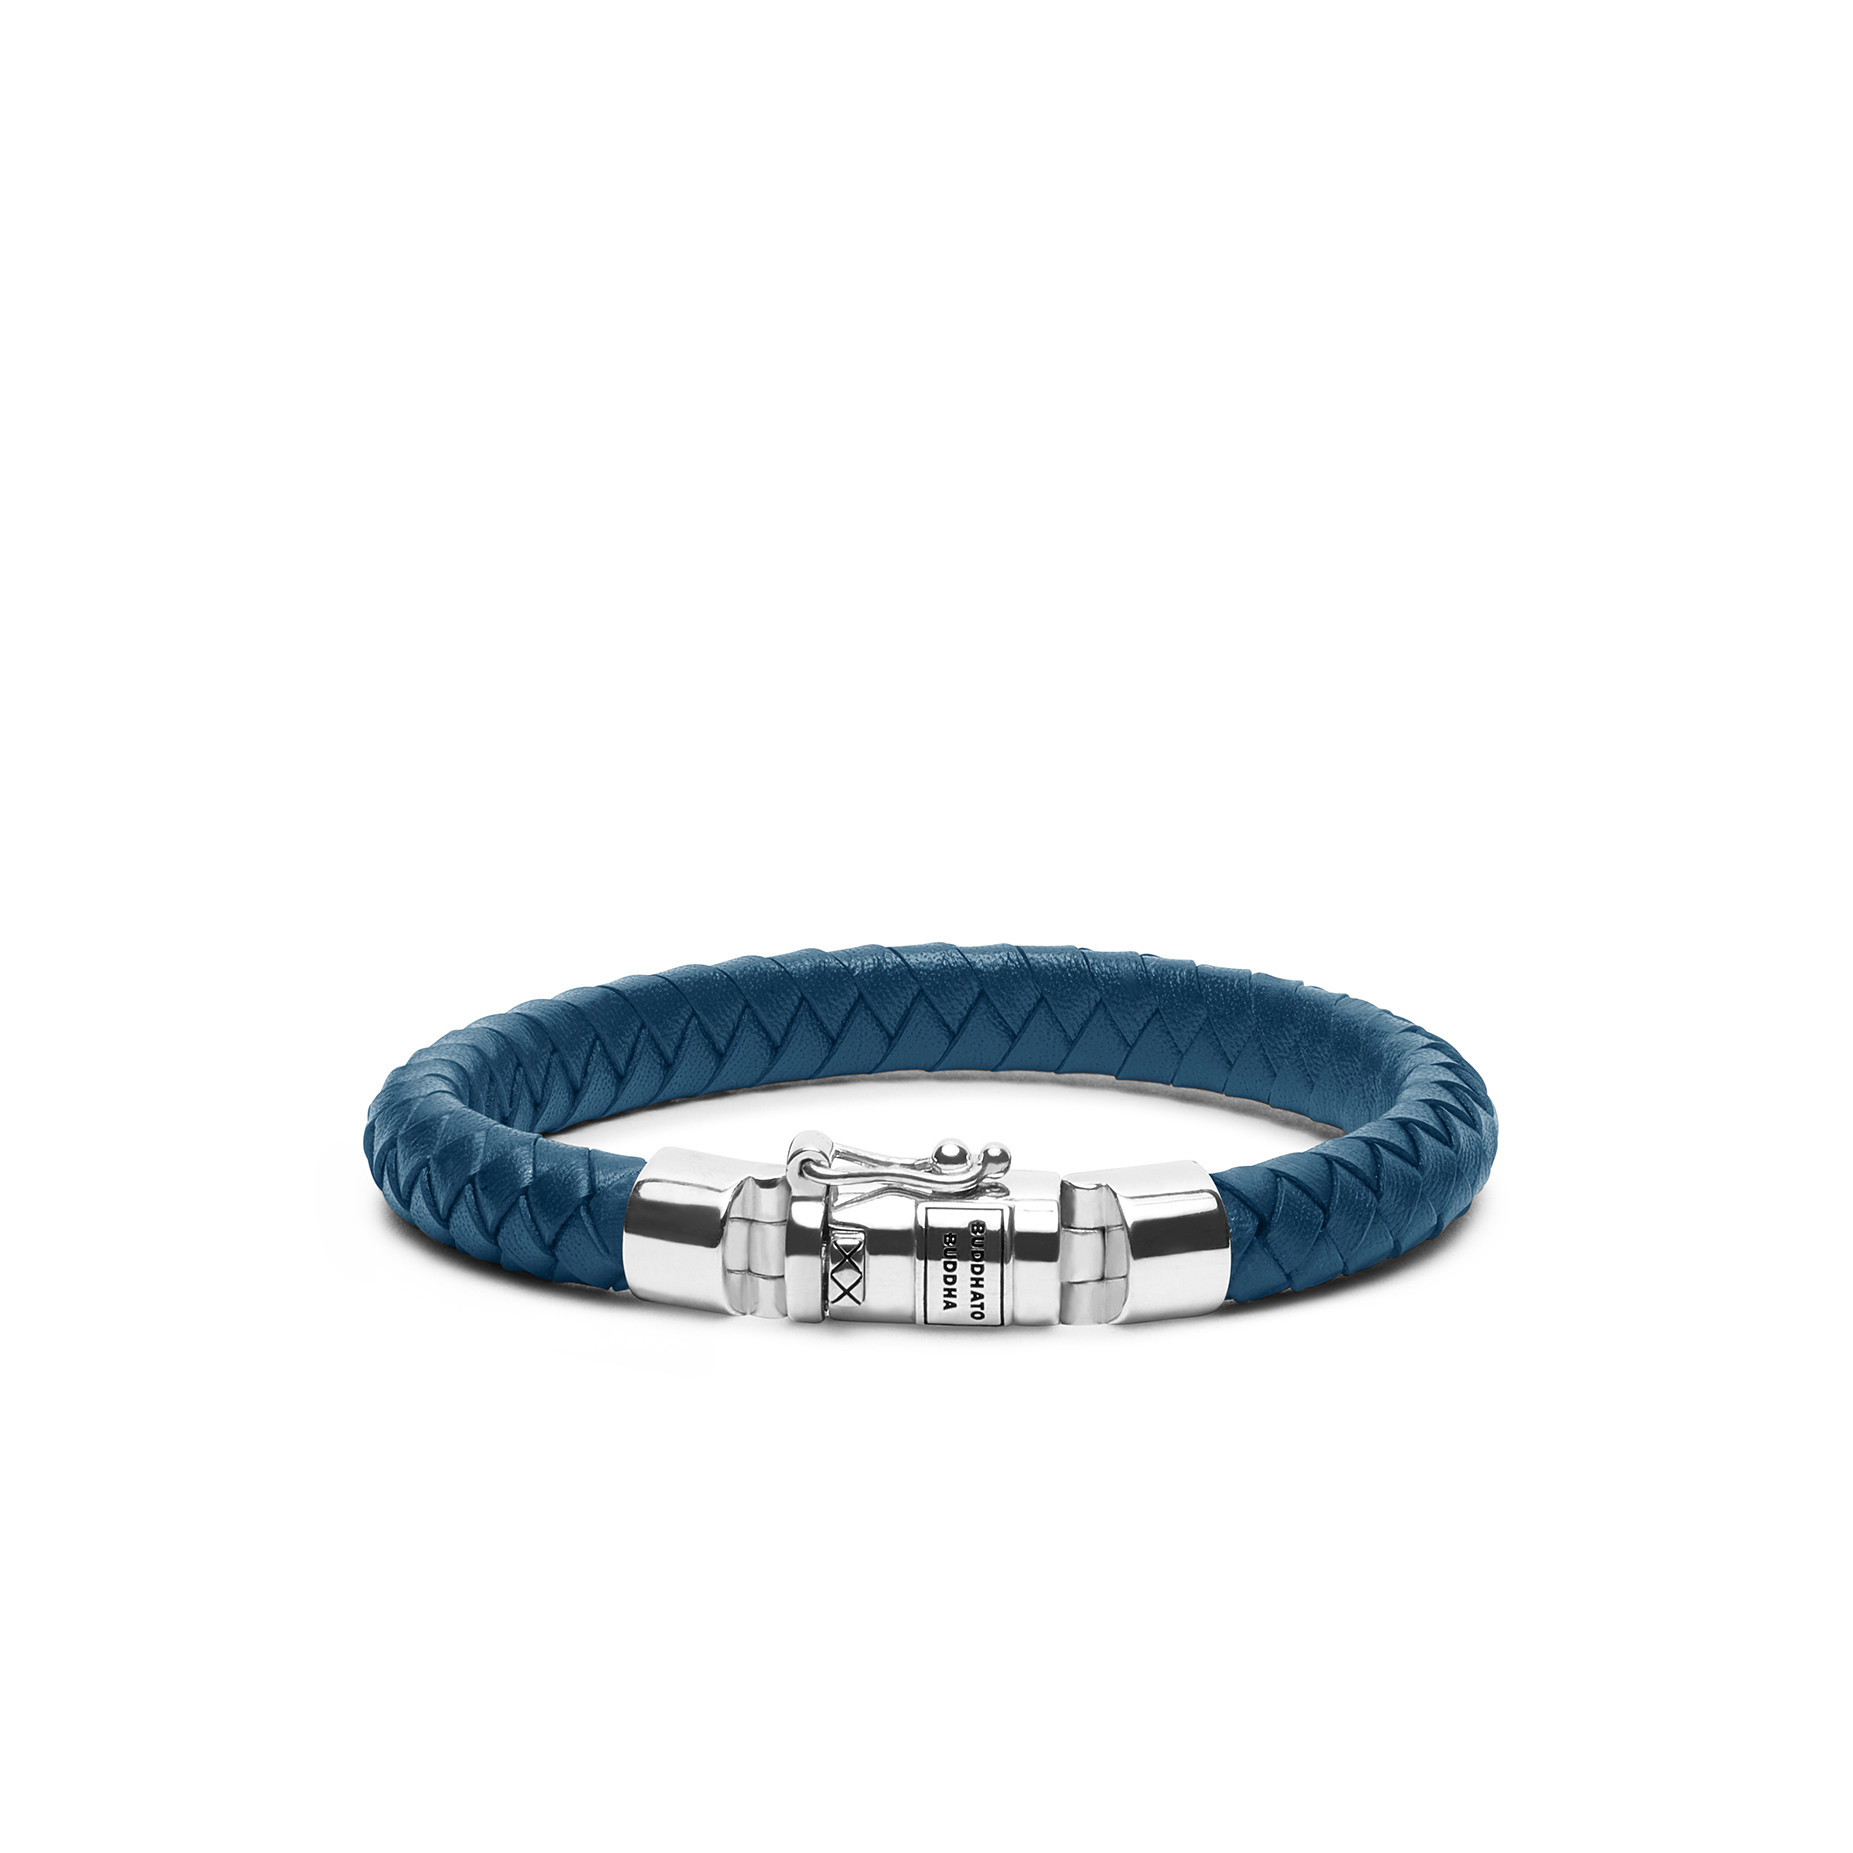 Ben Small Leather Blue-7